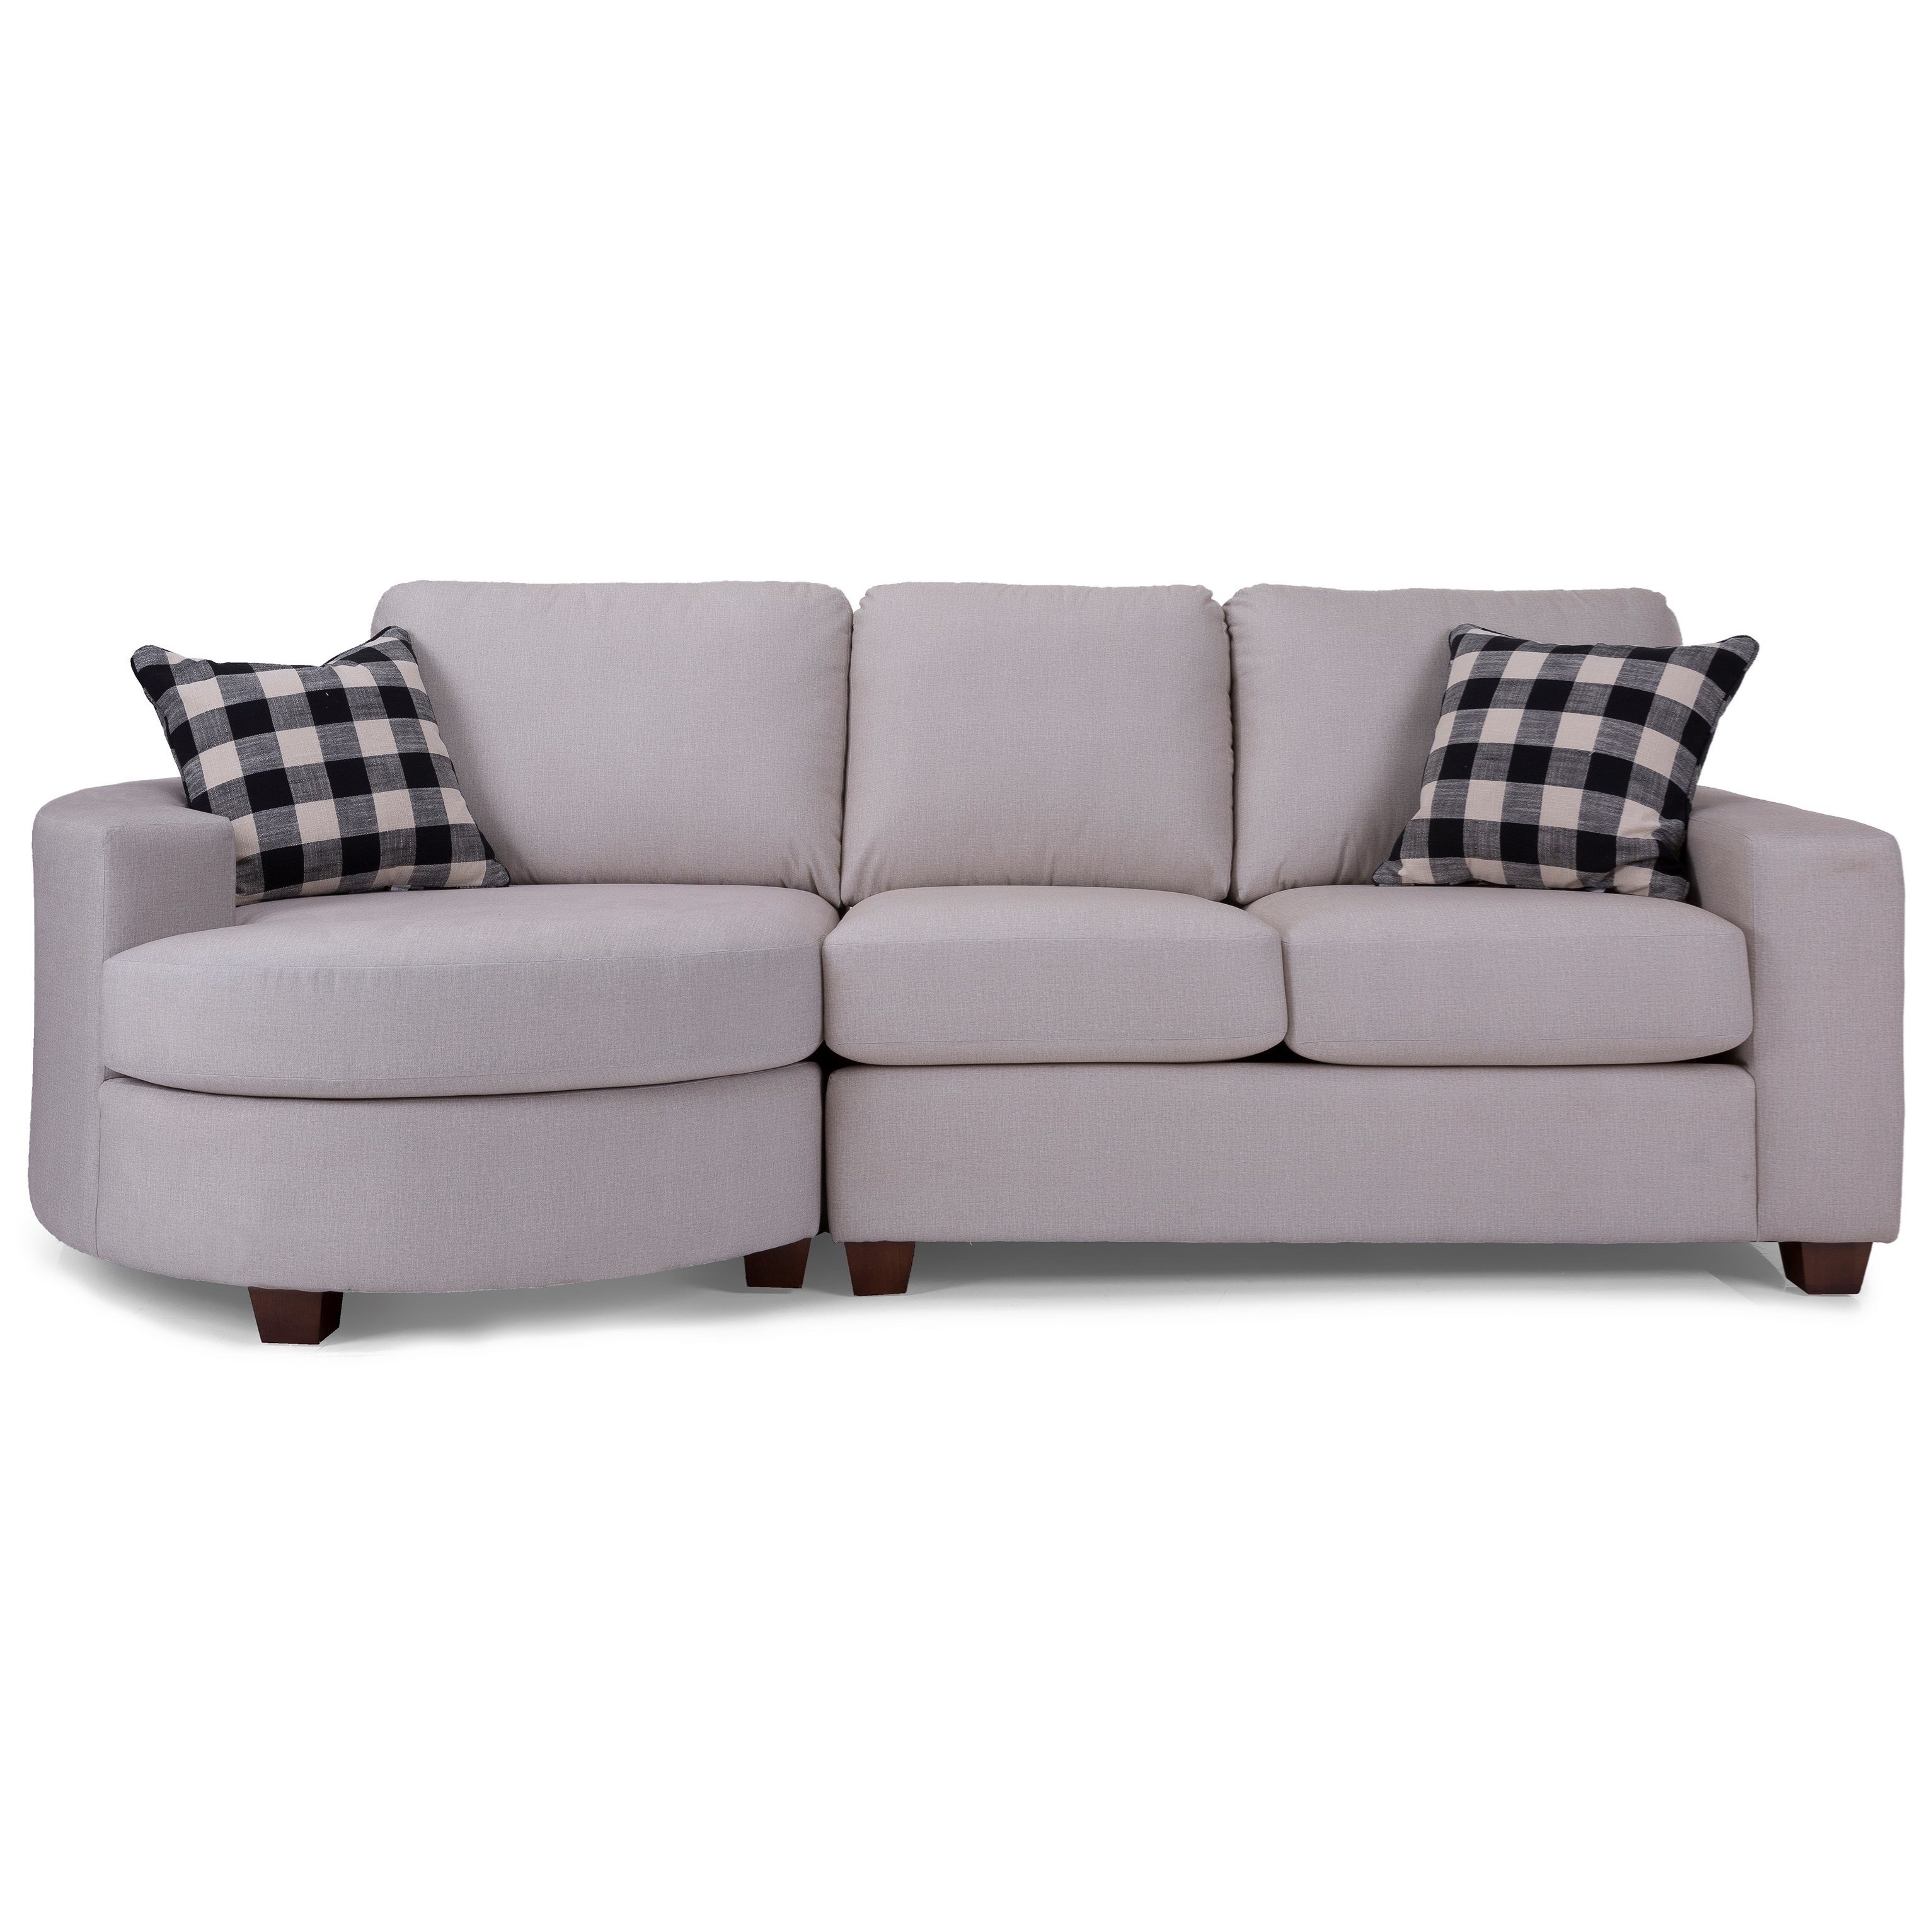 Alessandra Connections Sofa with Bumper by Decor-Rest at Johnny Janosik